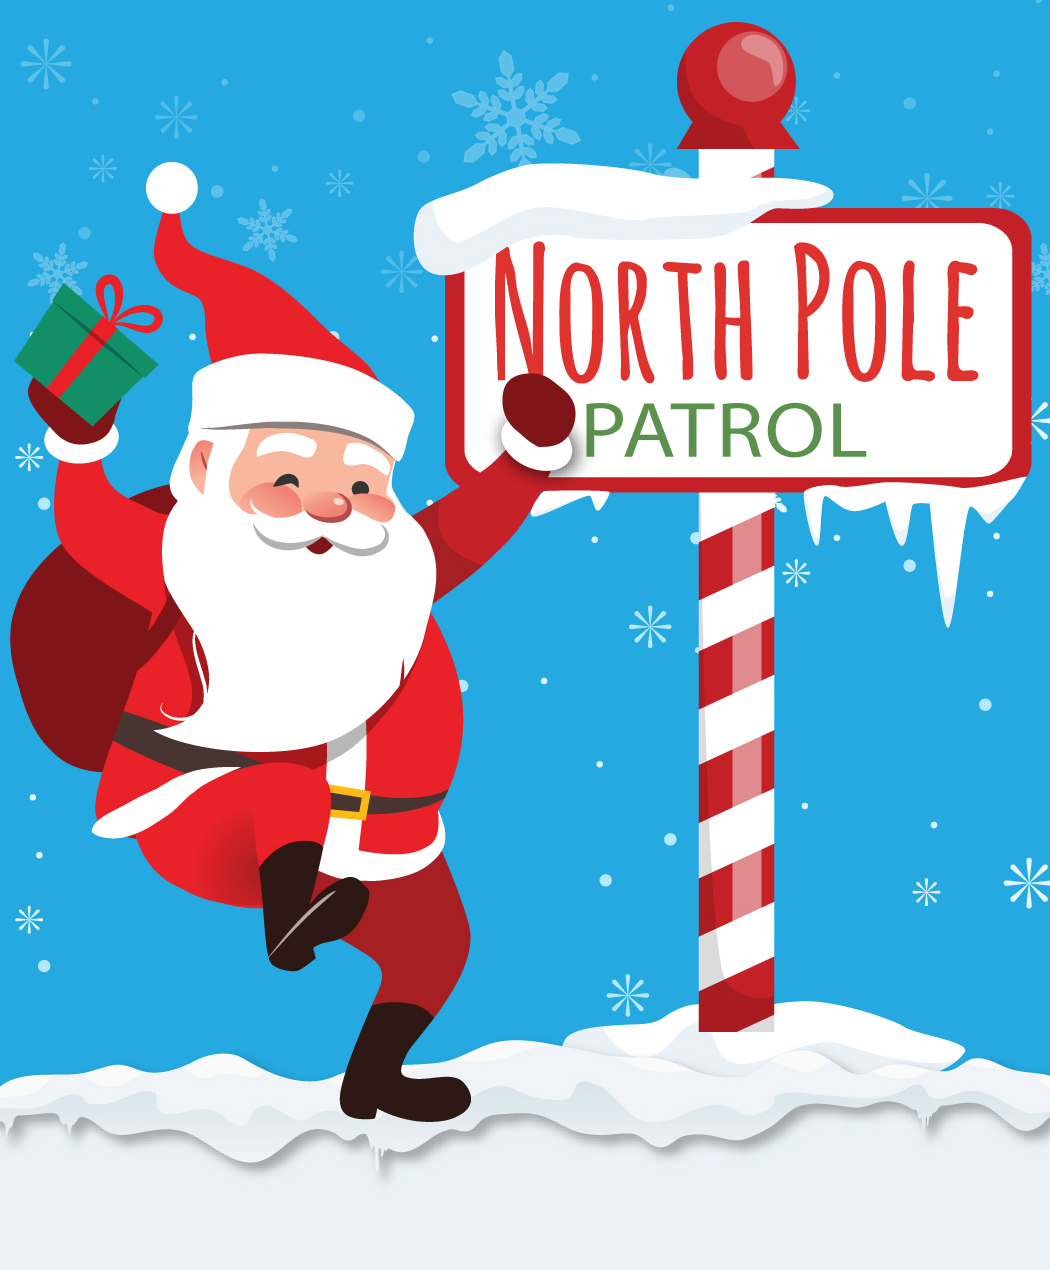 North Pole Patrol